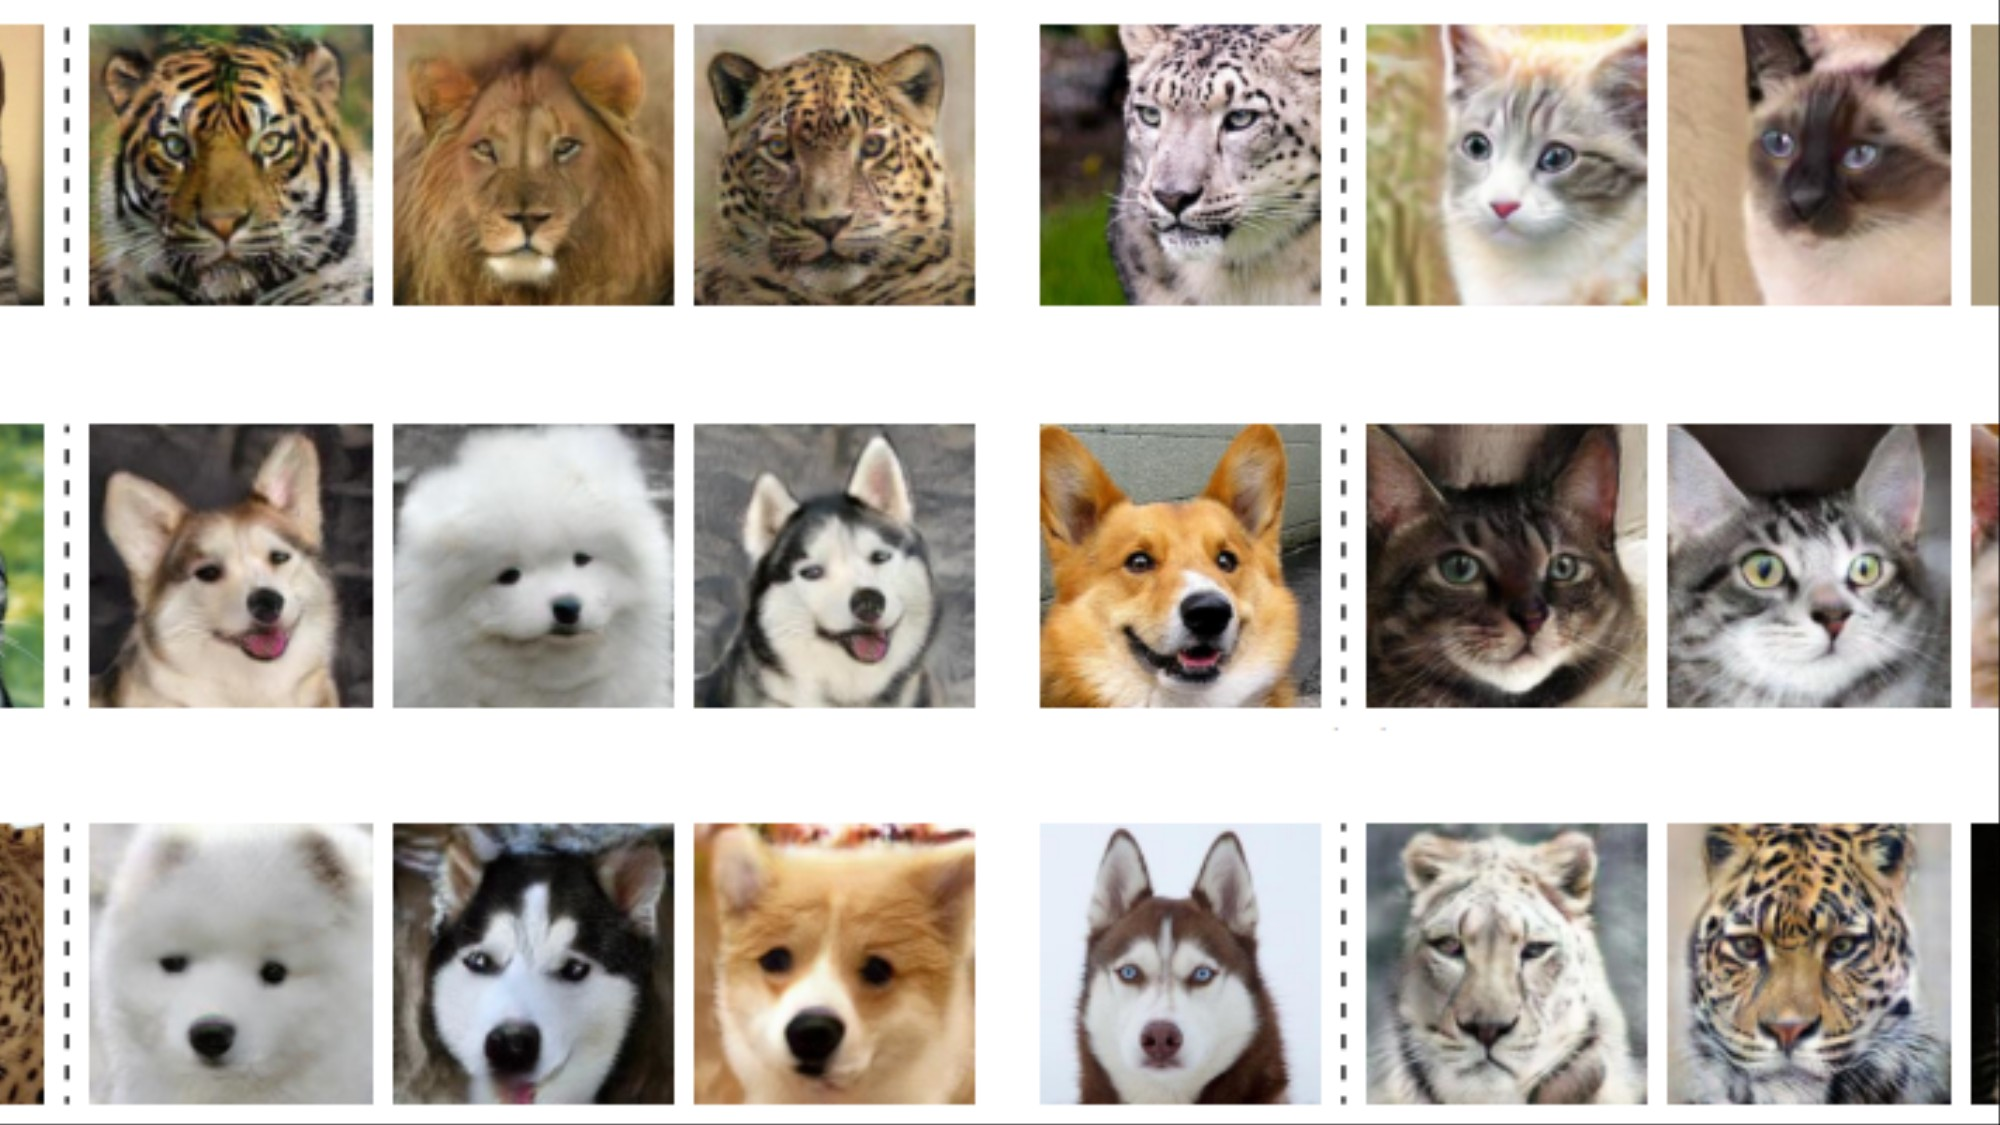 Animal Cat Video Porn this ai will turn your dog into a cat - vice